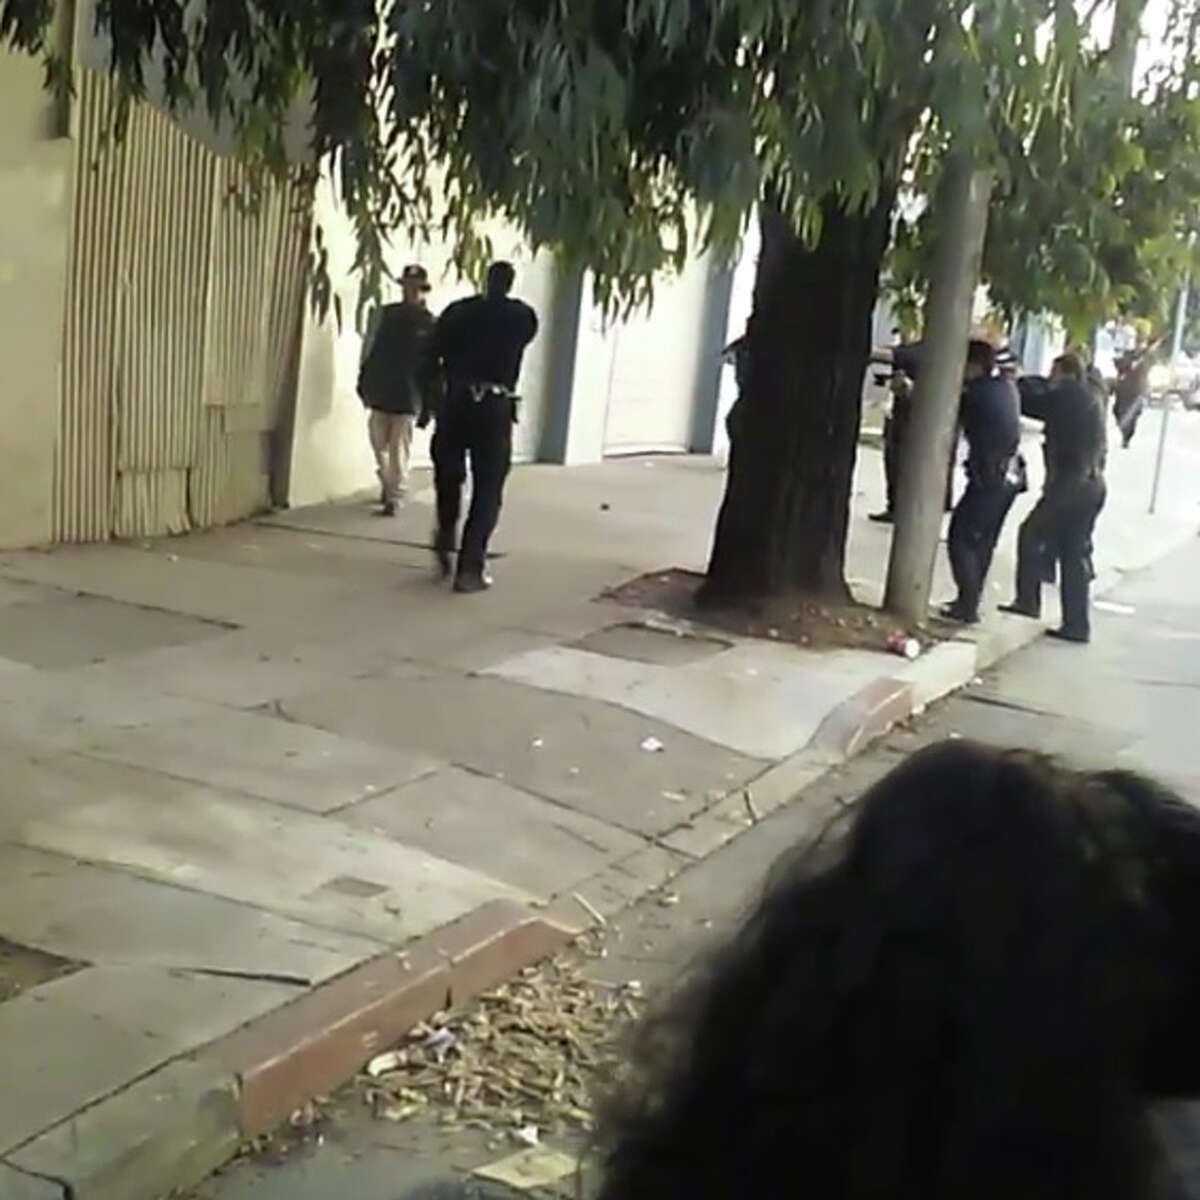 The shooting on Keith Street in San Francisco occurred after officers tried and failed to subdue the man with nonlethal beanbags, was recorded by someone on a Muni bus who posted the video to Instagram.